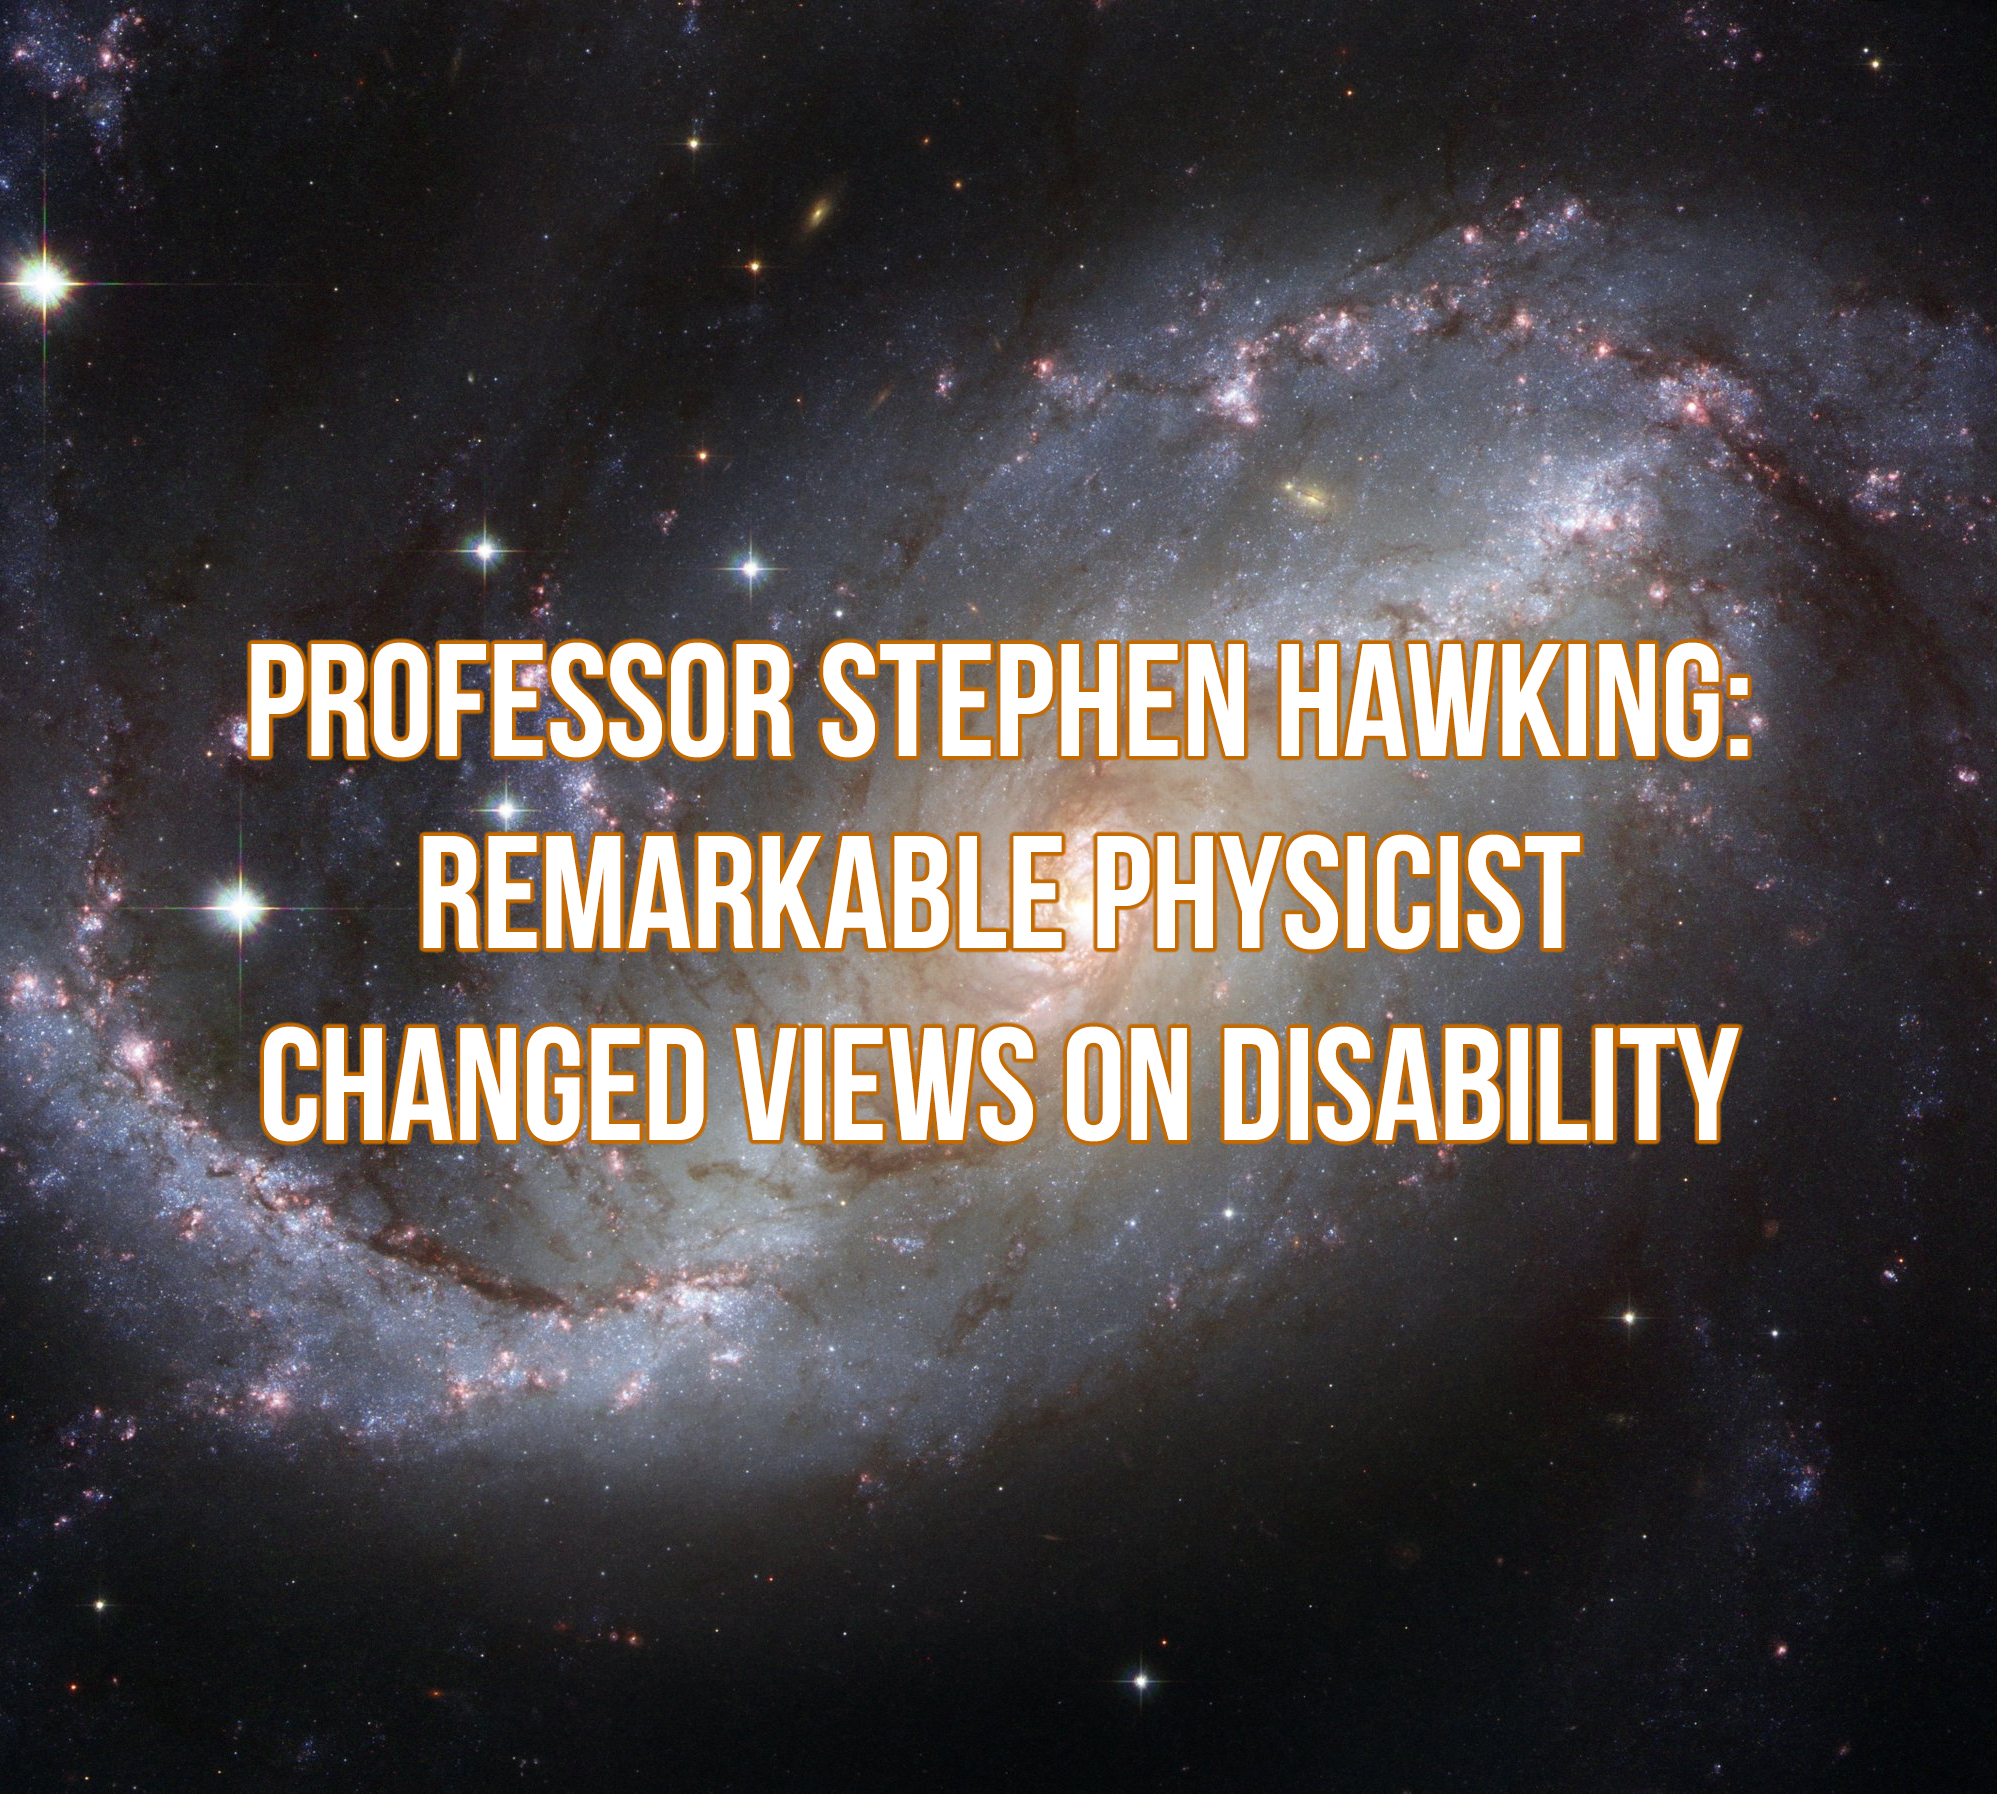 Stephen Hawking: Remarkable Physicist never let his disability stop him